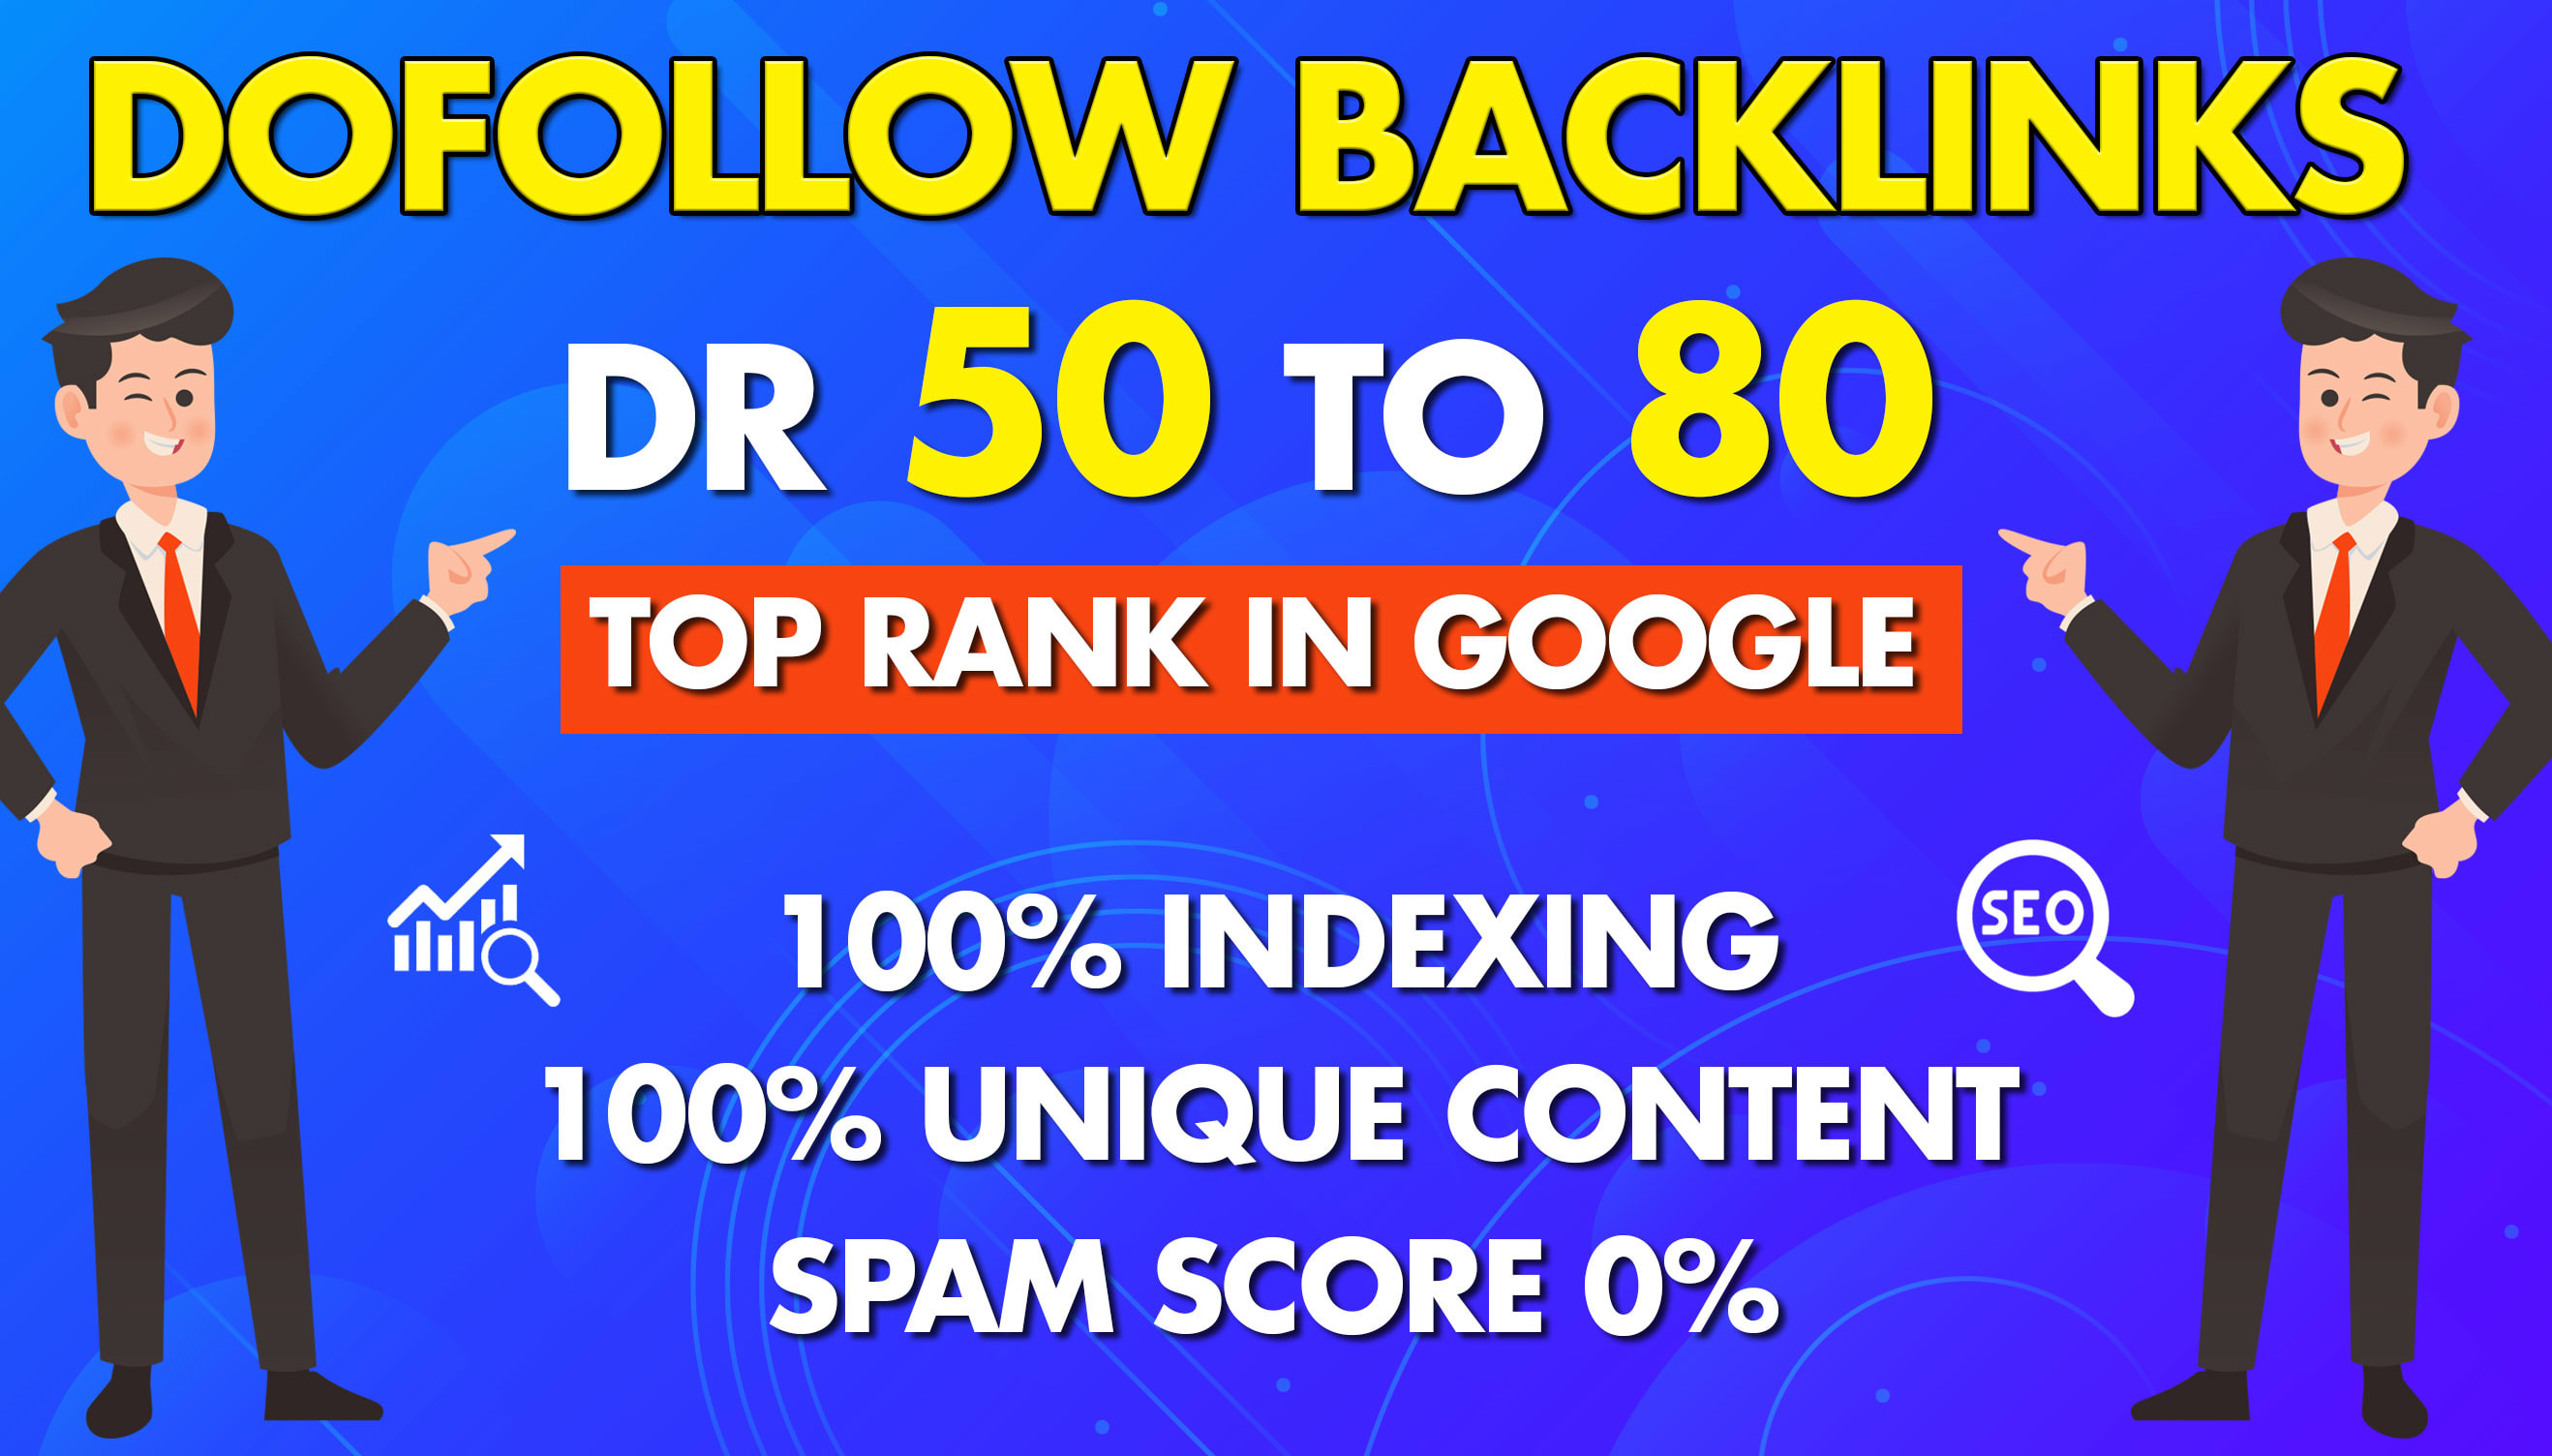 I will make dr60 to 80 plus dofollow backlinks